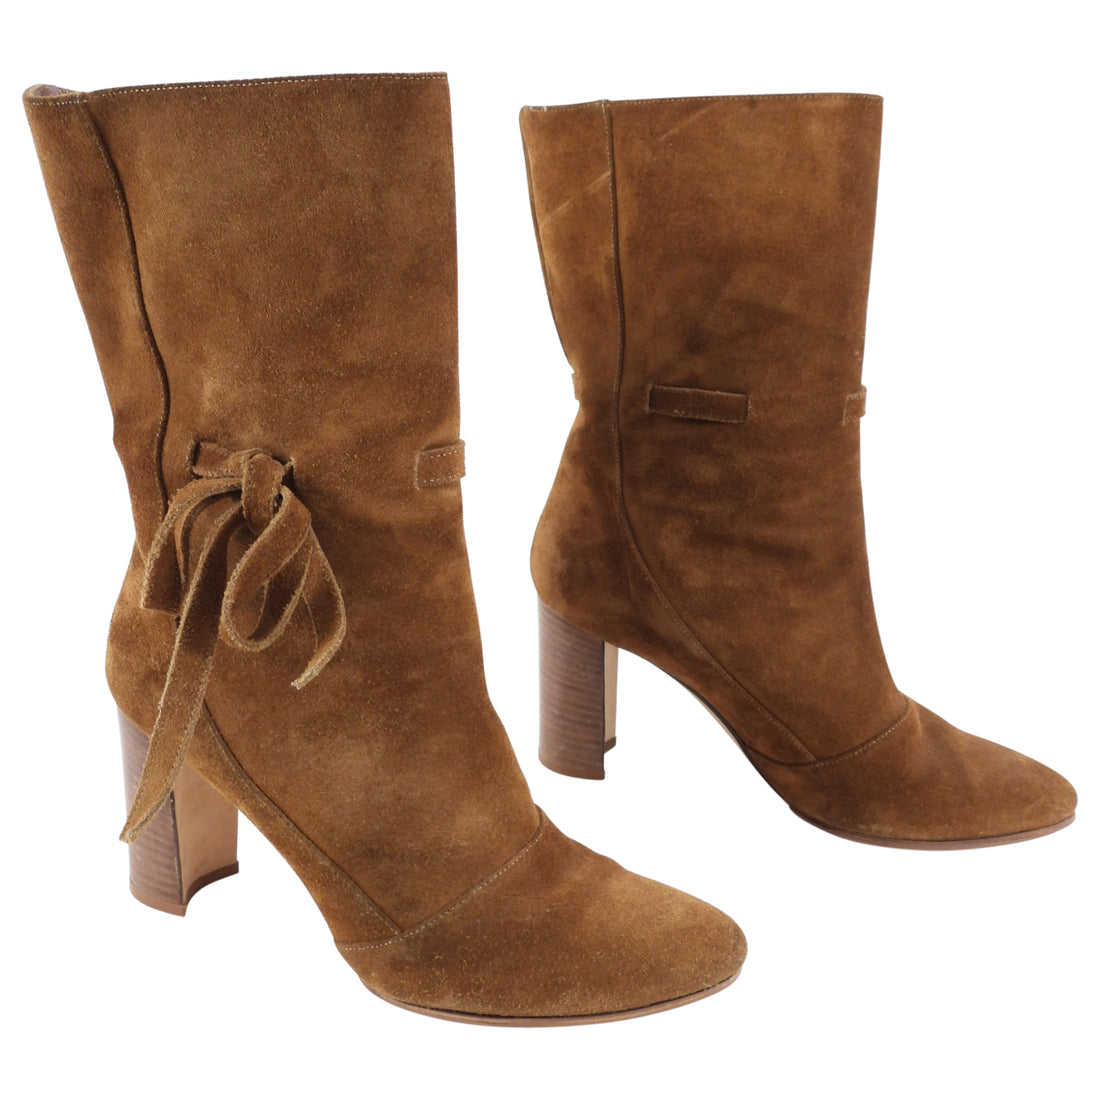 Manolo Blahnik Brown Tan Suede Ankle Boots - 35